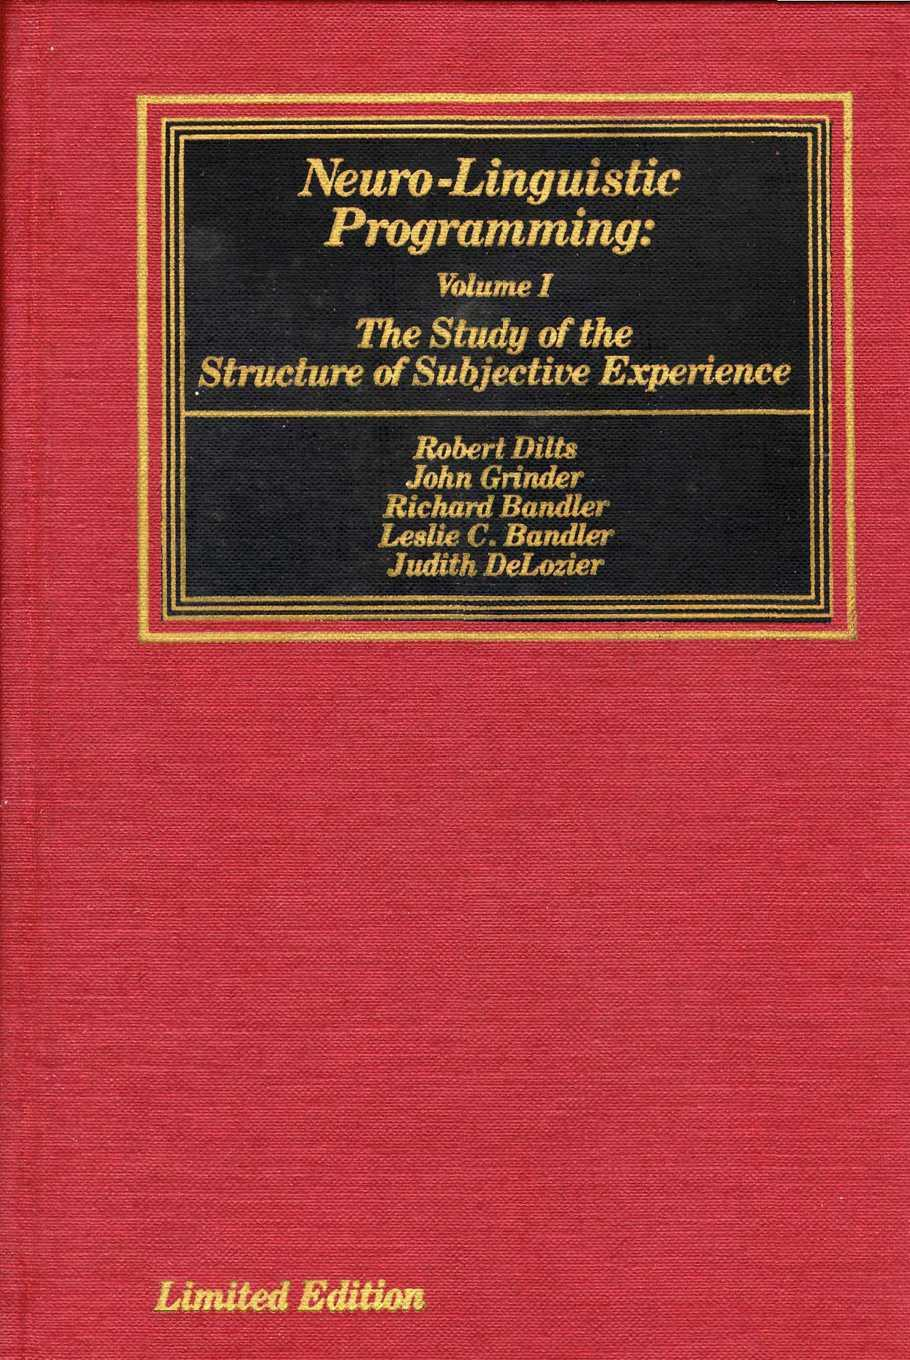 обложка книги Neuro–Linguistic Programming: Volume I. The Study of the Structure of Subjective Experience